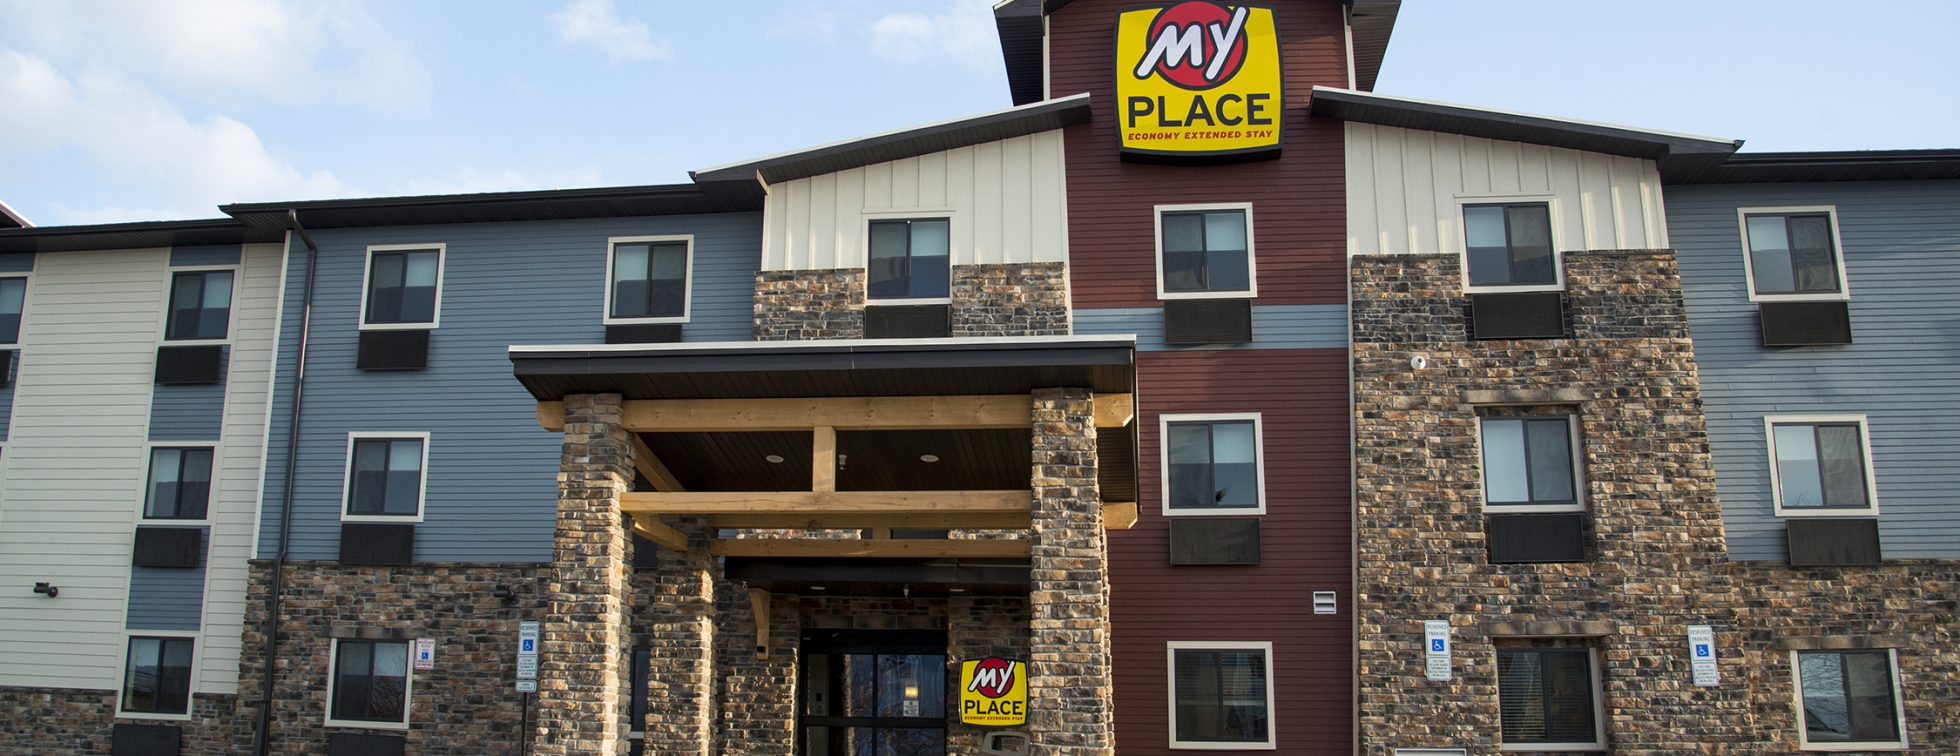 Extended Stay Hotels Rapid City Sd